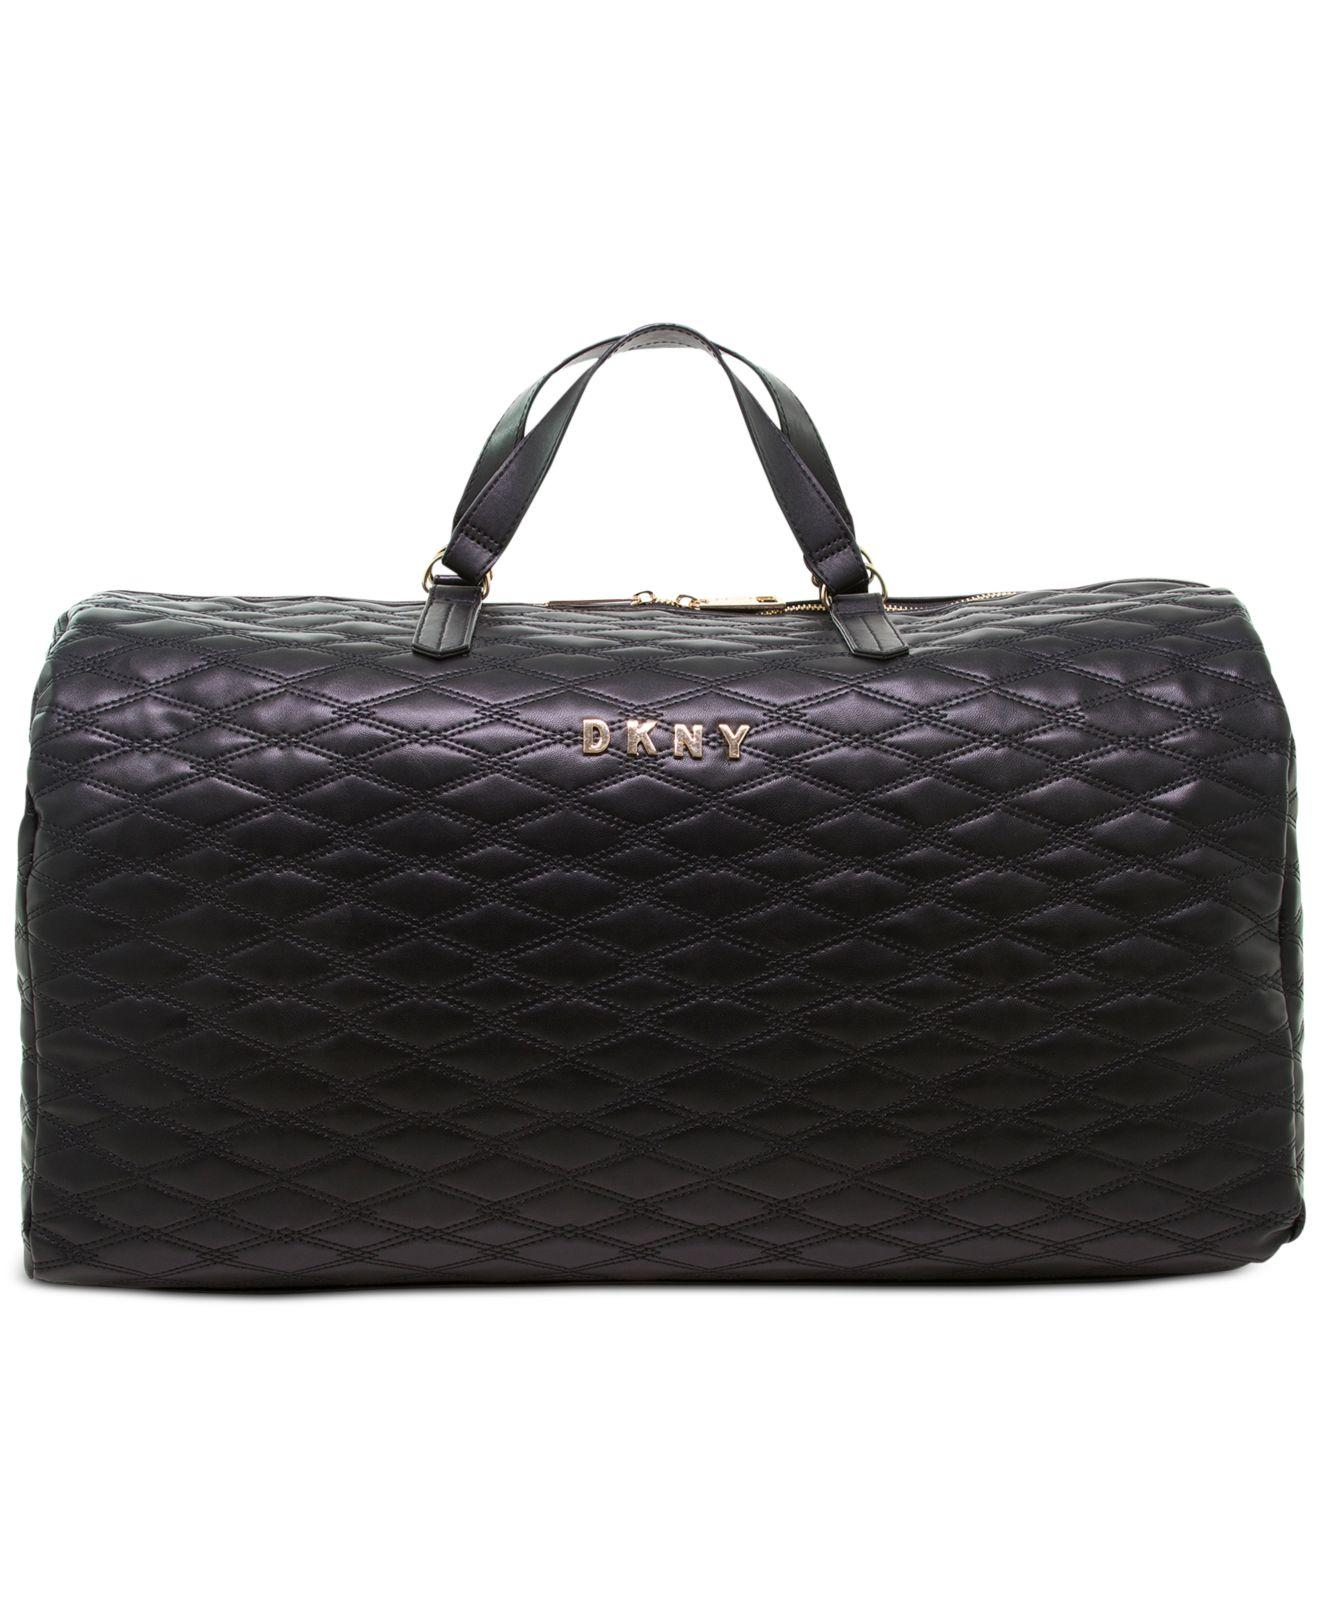 6c73caa6ba33 Lyst - DKNY Allure Quilted Barrel Duffle Large in Black